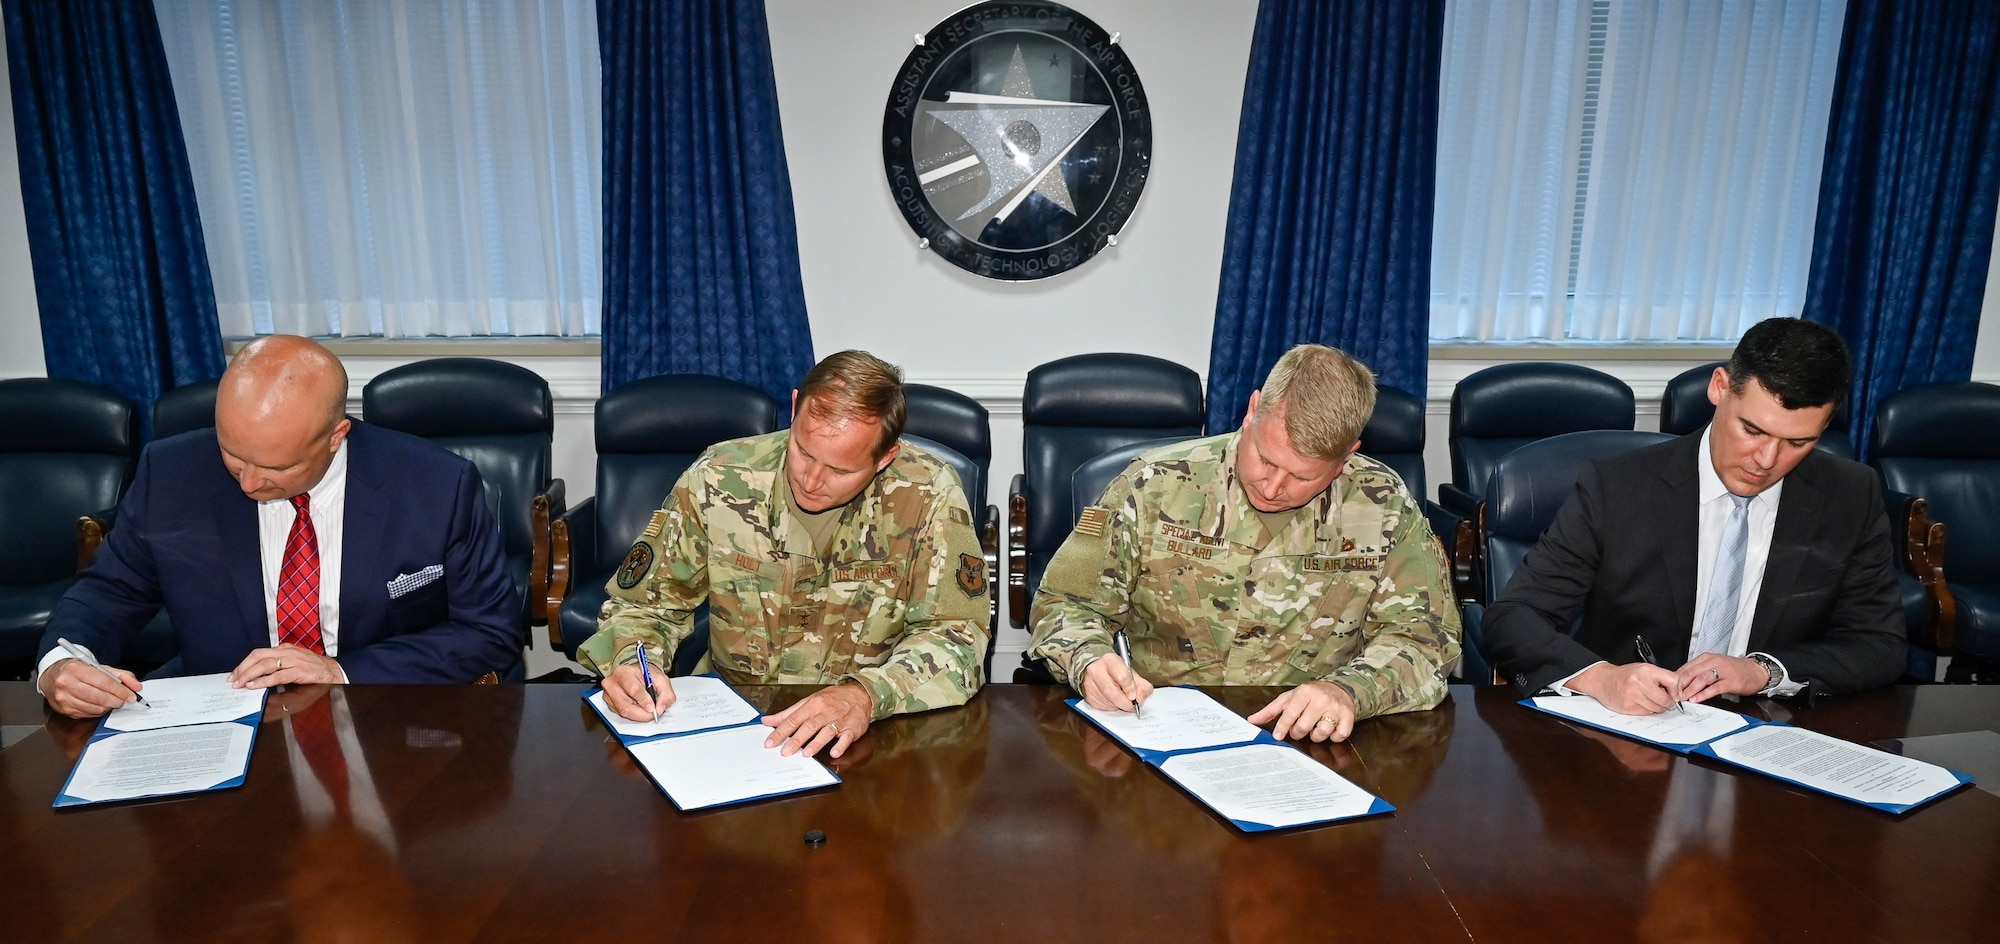 Robert Preston, Judge Advocate General's Corps, Civil Law Domain director; Maj. Gen. Cameron Holt, Office of the Assistant Secretary of the Air Force for Acquisition, Contracting deputy assistant secretary; Brig. Gen. Terry Bullard, Air Force Office of Special Investigations commander; and Derek Santos, Contractor Responsibility and Conflict Resolution deputy general counsel, sign a joint memorandum of understanding at the Pentagon, Arlington, Va., July 8, 2021. The MOU established the Department of the Air Force Acquisition Integrity Working Group.